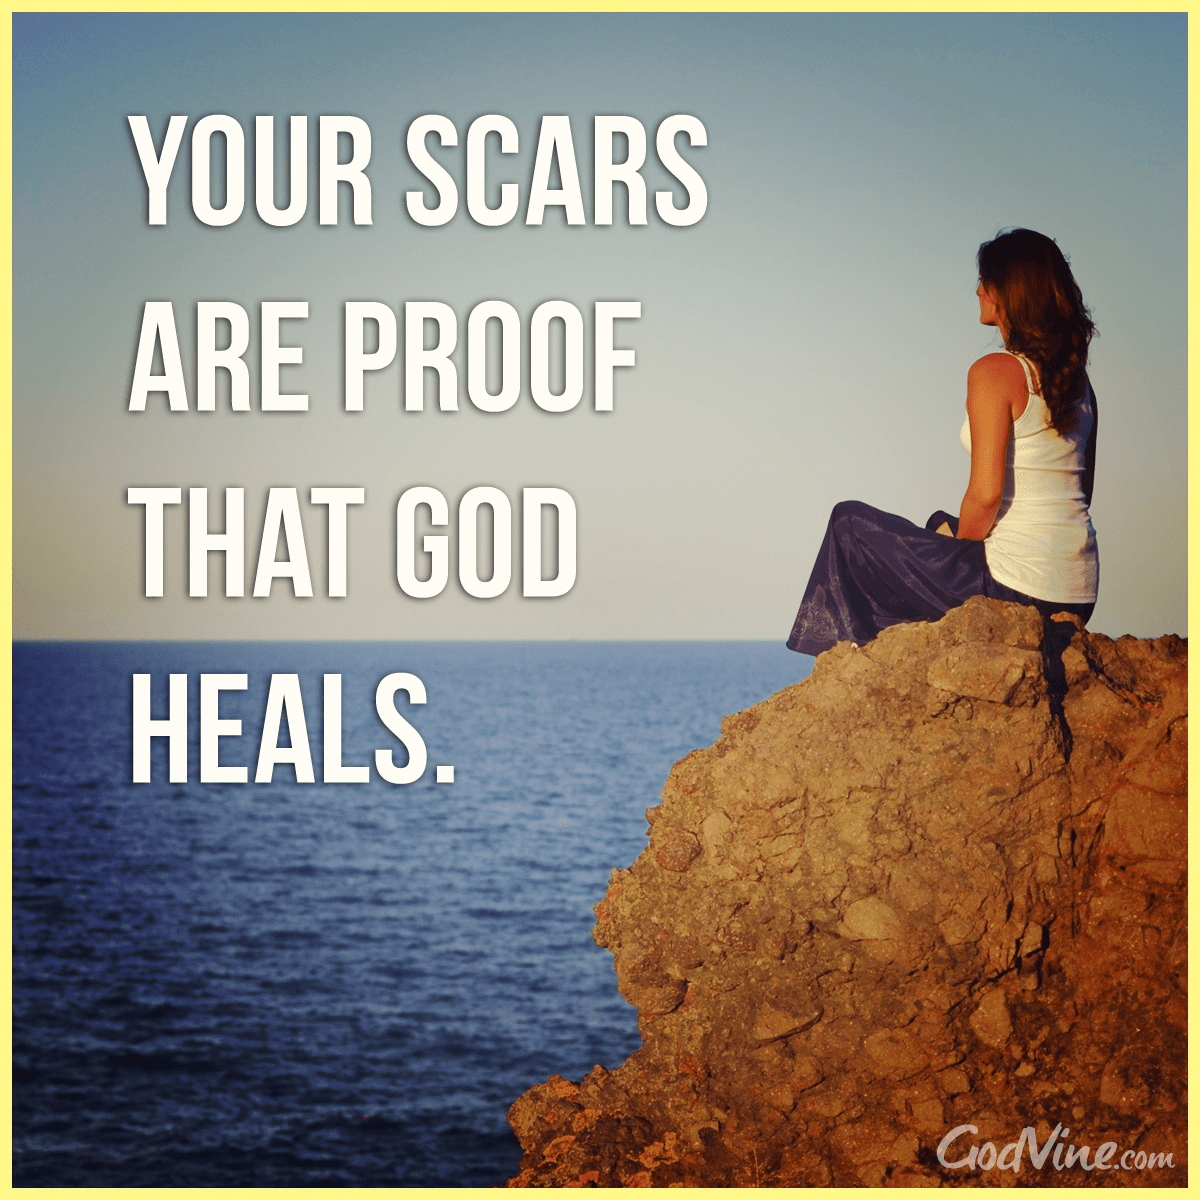 Your Scars are Proof that God Heals